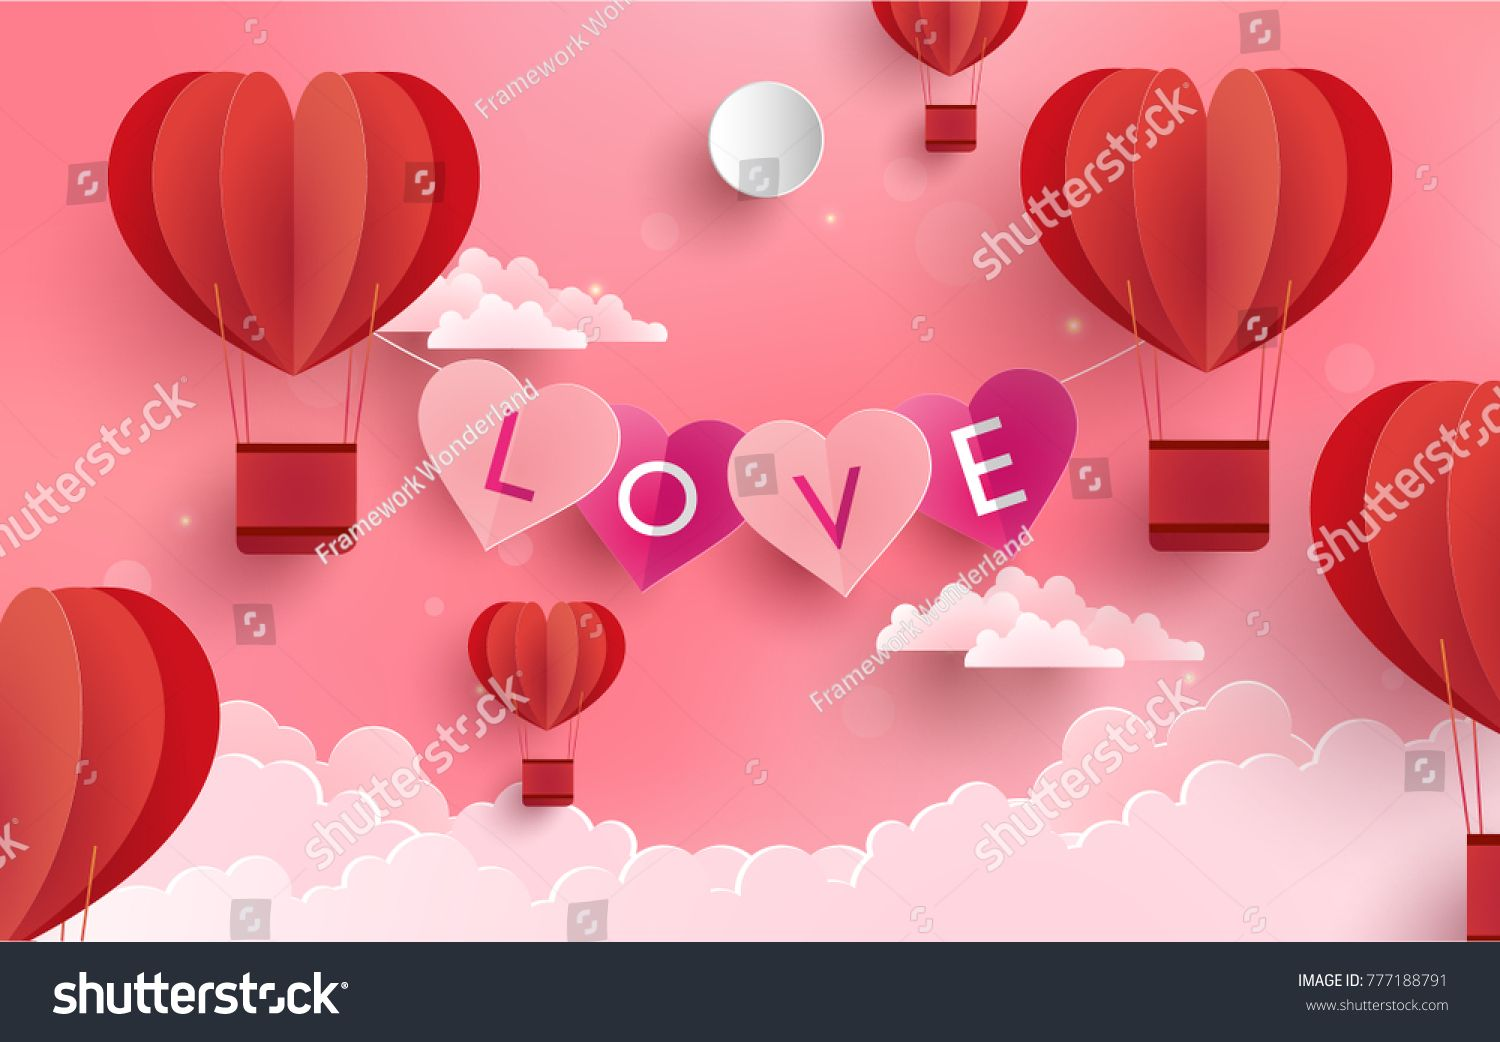 Illustration symbol of love with the design of paper art and craft illustration symbol of love with the design of paper art and craft a pink background biocorpaavc Images